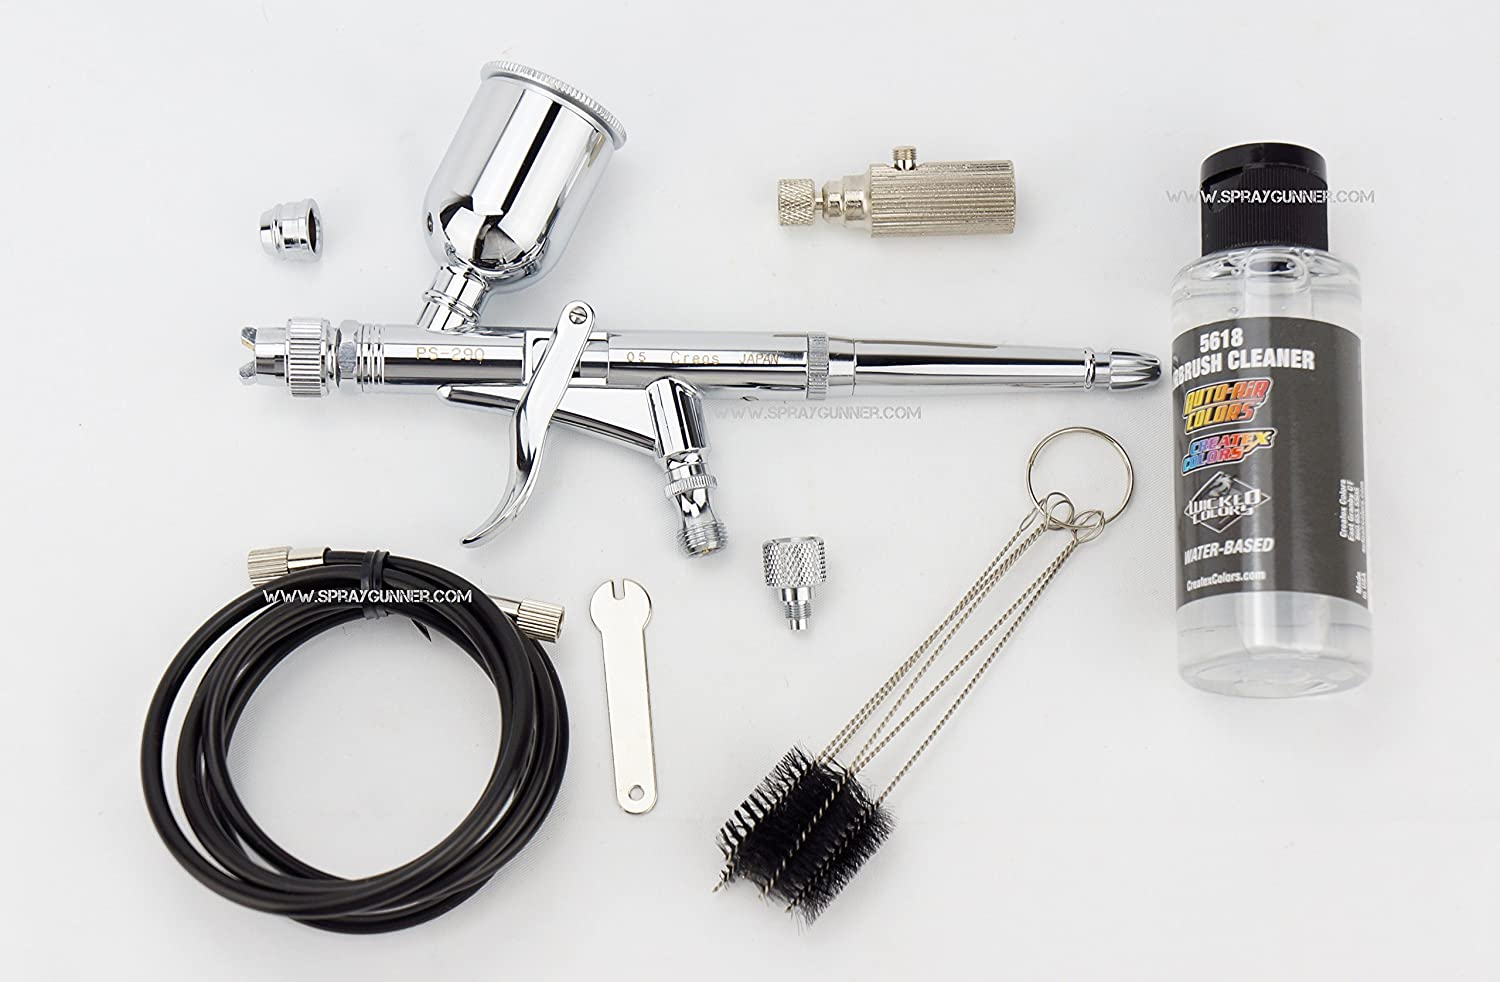 GSI Creos Airbrush PS290 MR.Procon BOY LWA 0.5mm Double Action Trigger Type